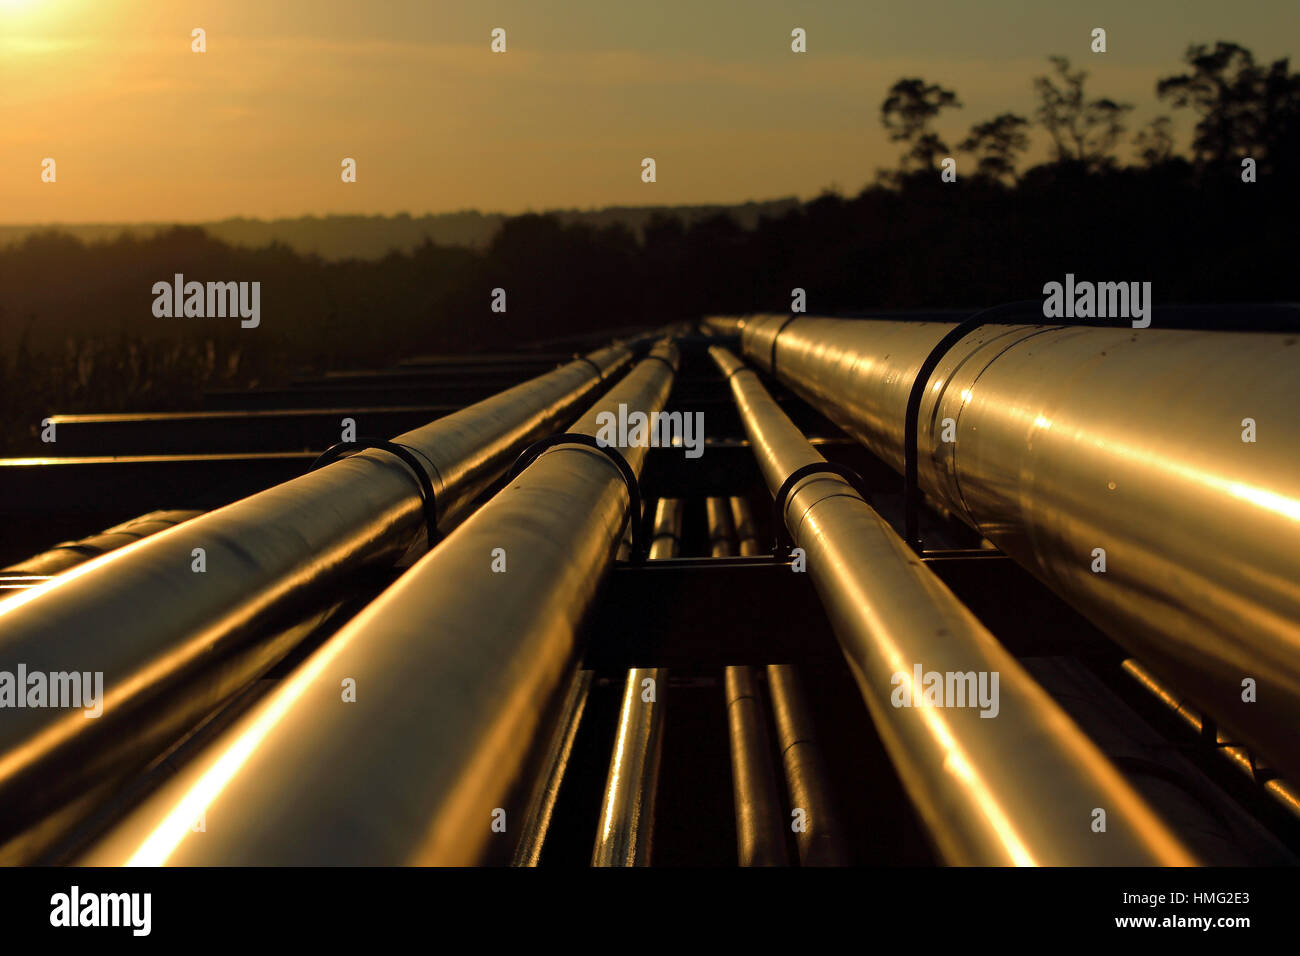 pipeline connection  from crude oil field - Stock Image